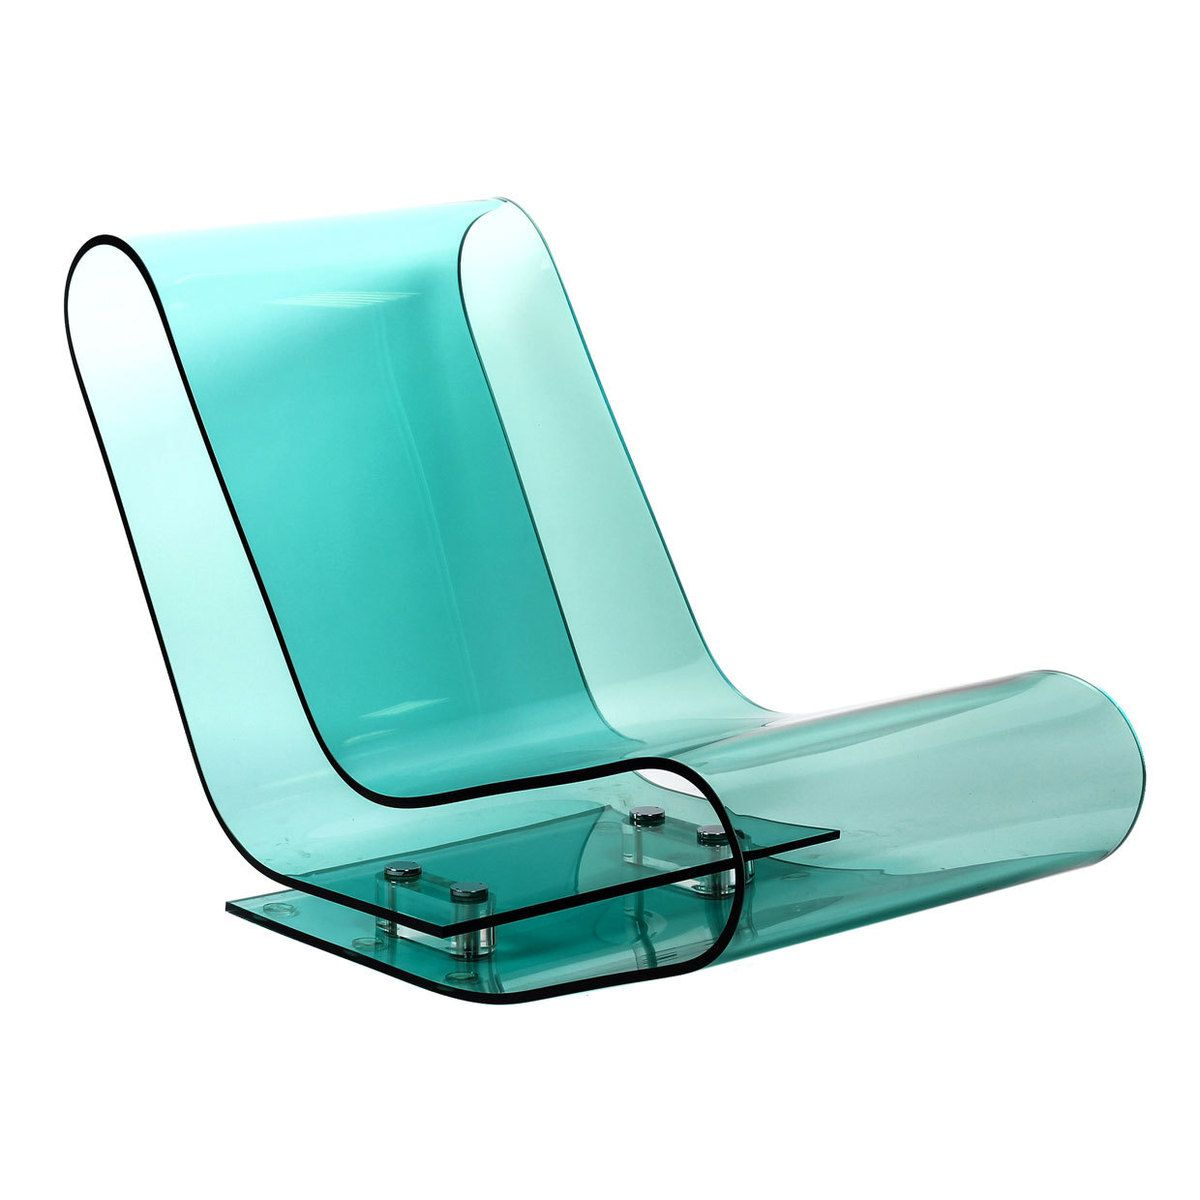 Lounge chair made out of a single piece of transparent for Chaise longue plastique